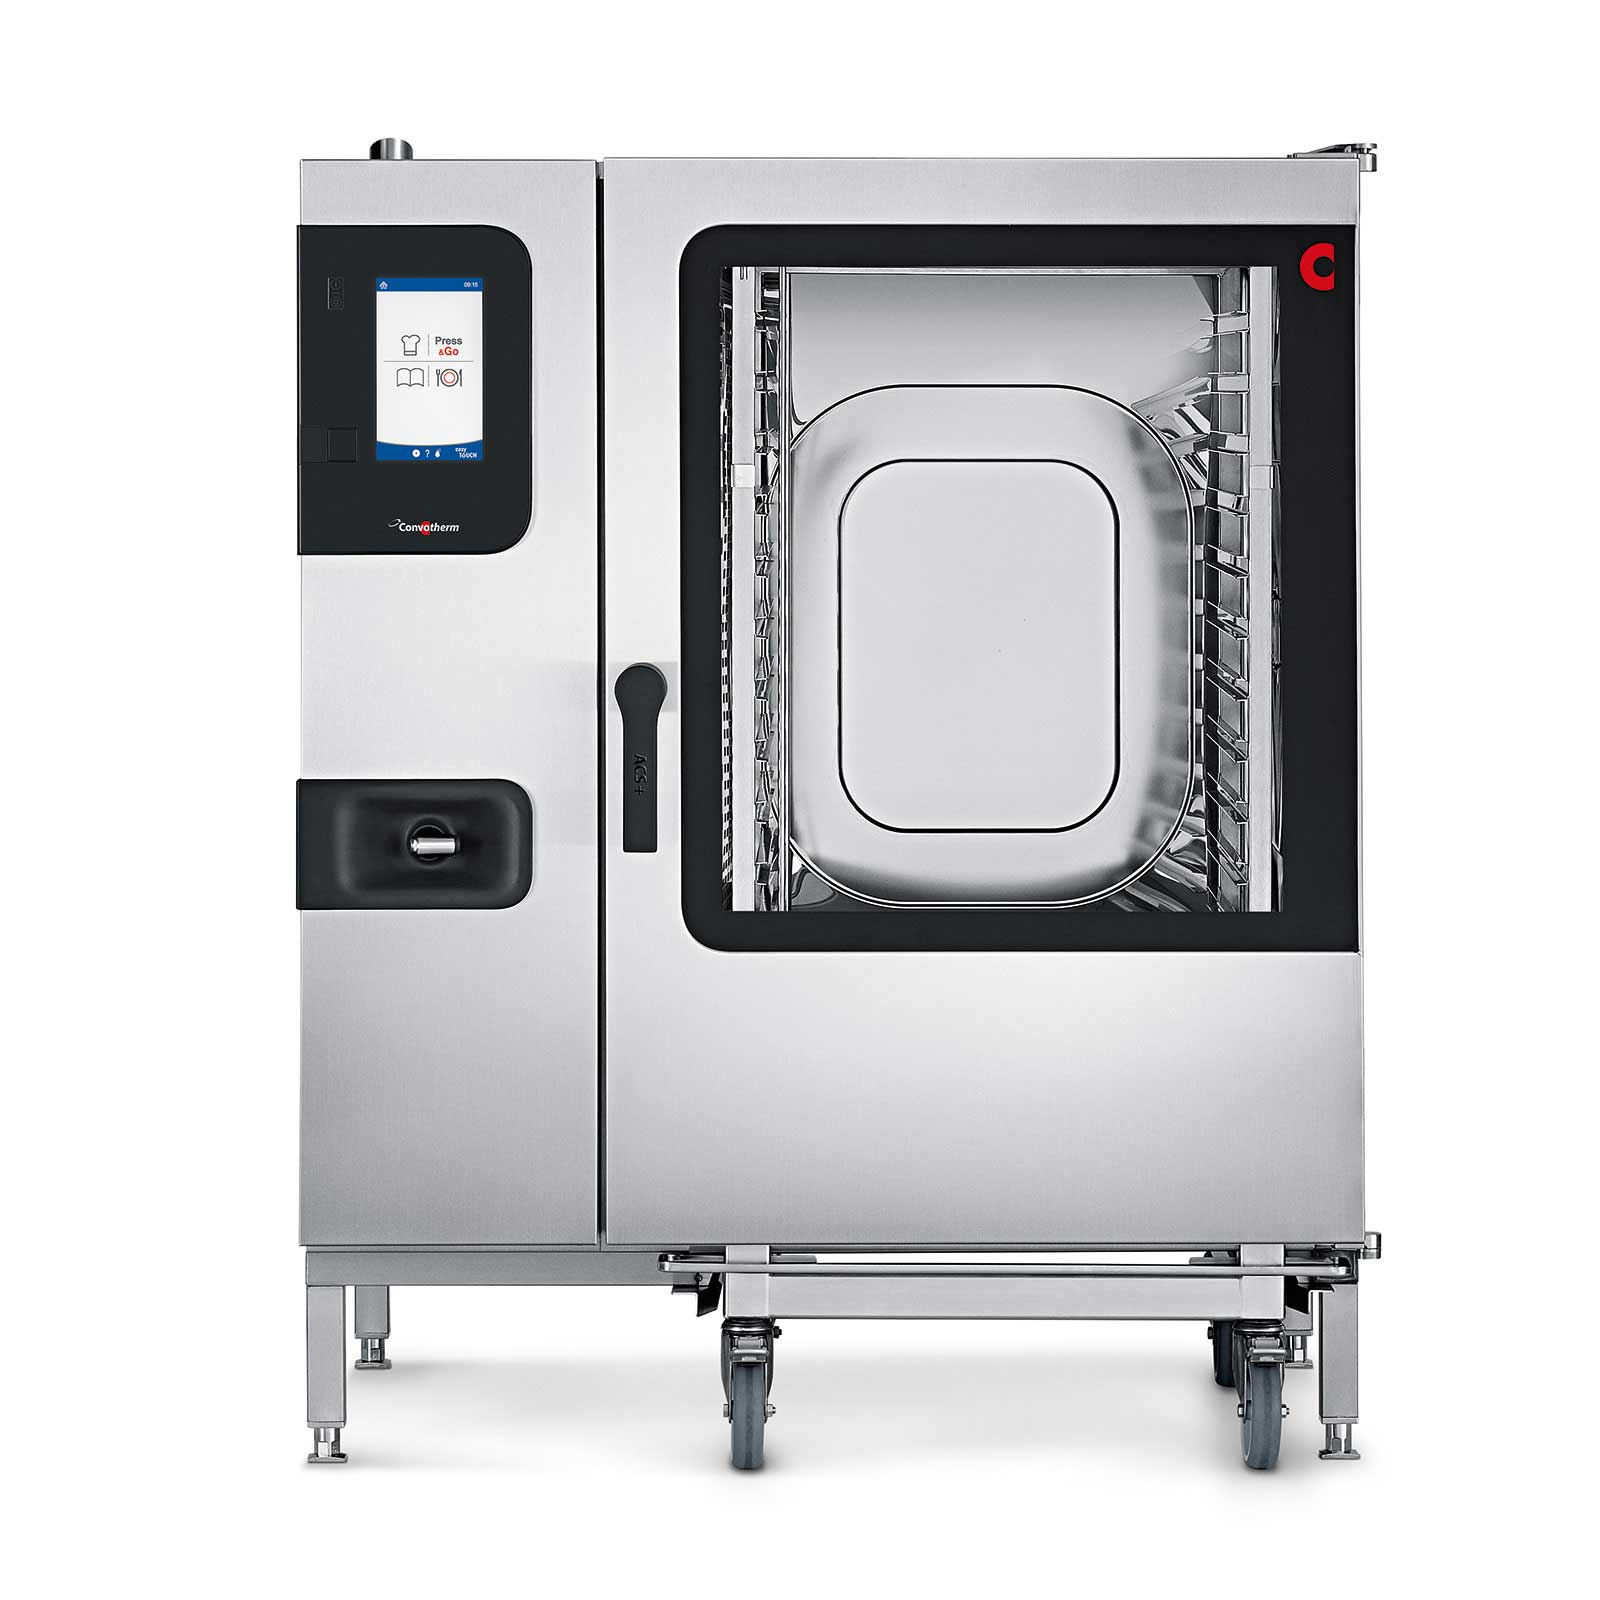 c4 et convotherm roll in electric combi oven with easytouch controls. Black Bedroom Furniture Sets. Home Design Ideas